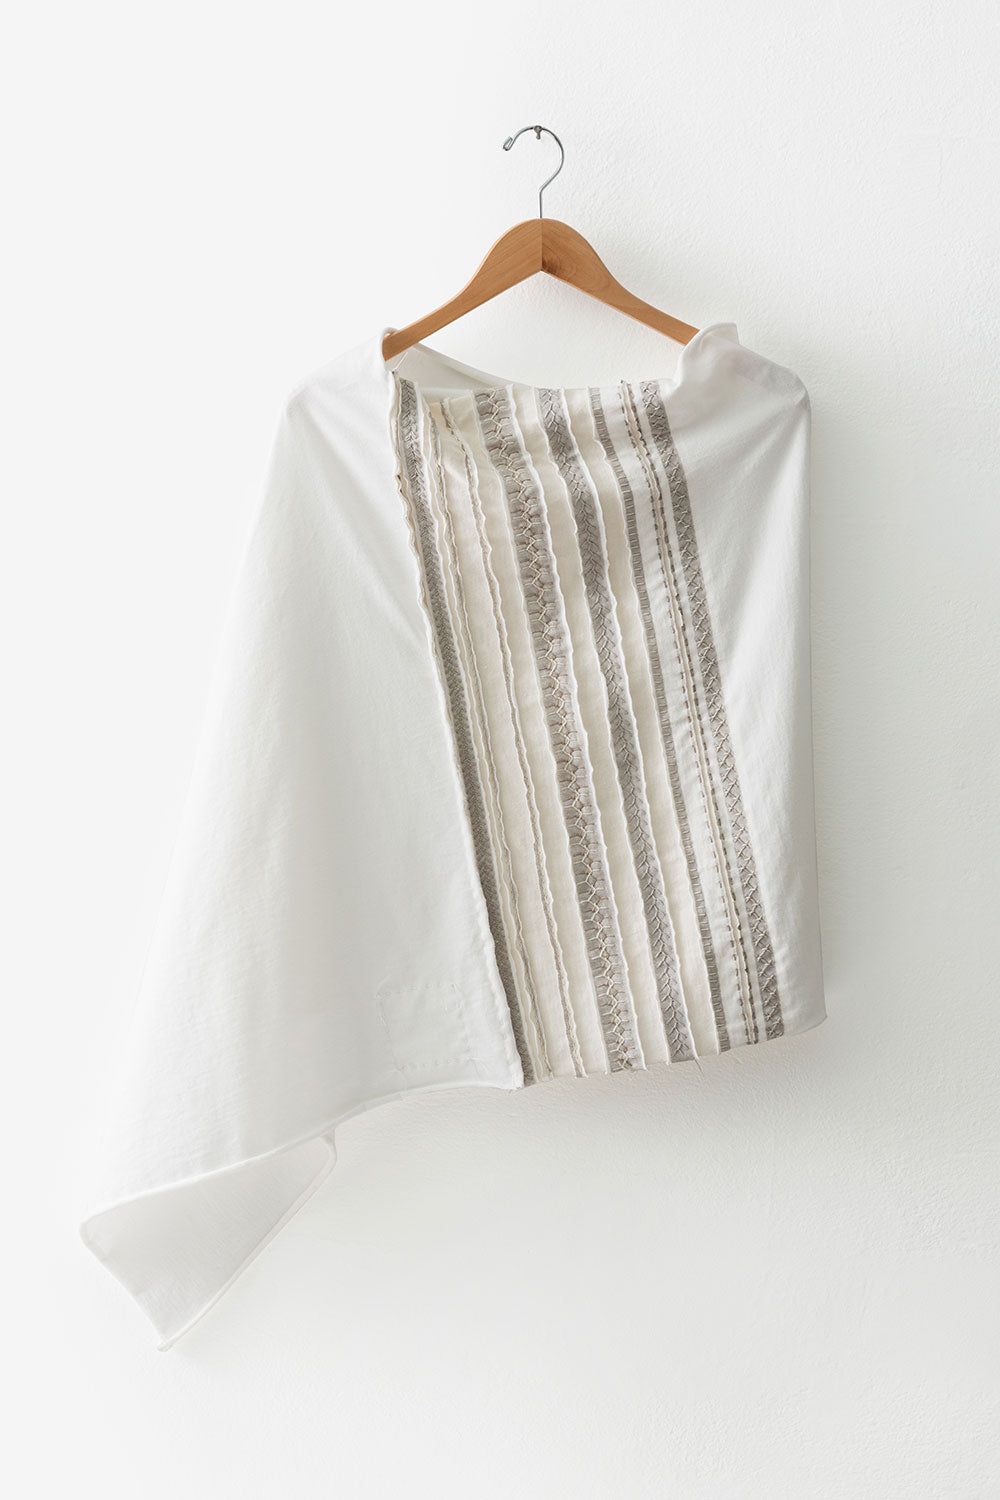 The School of Making Hand-Sewn Stripe Poncho DIY Kit with Natural White Organic cotton